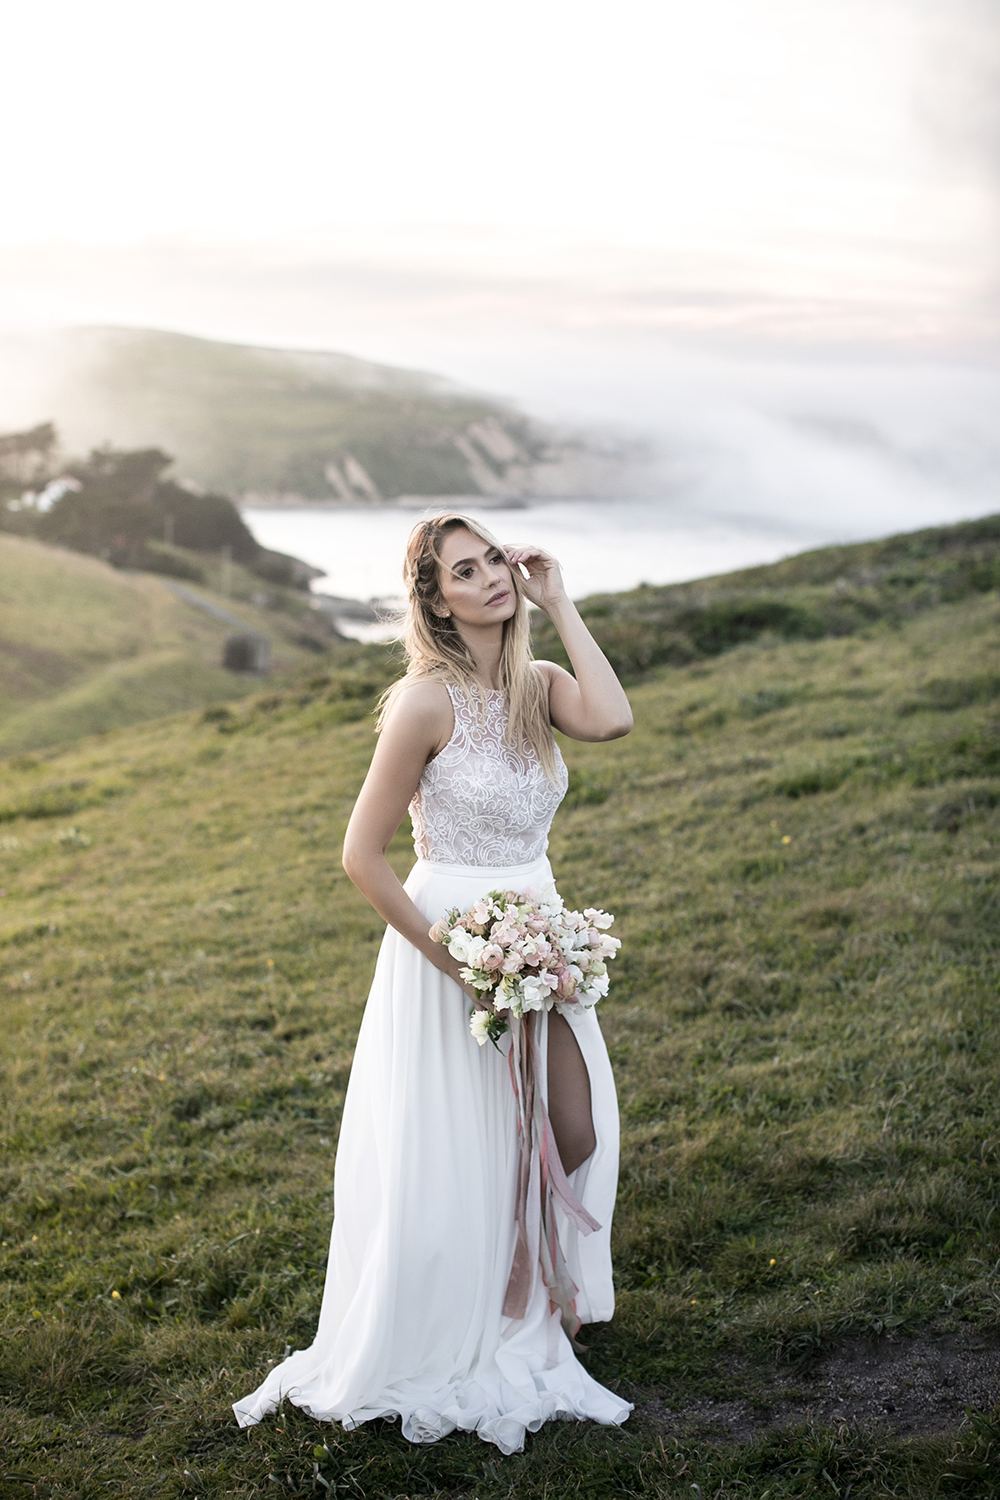 bridal fashion - photo by Tyler Rye Photography http://ruffledblog.com/romantic-coastal-california-wedding-inspiration